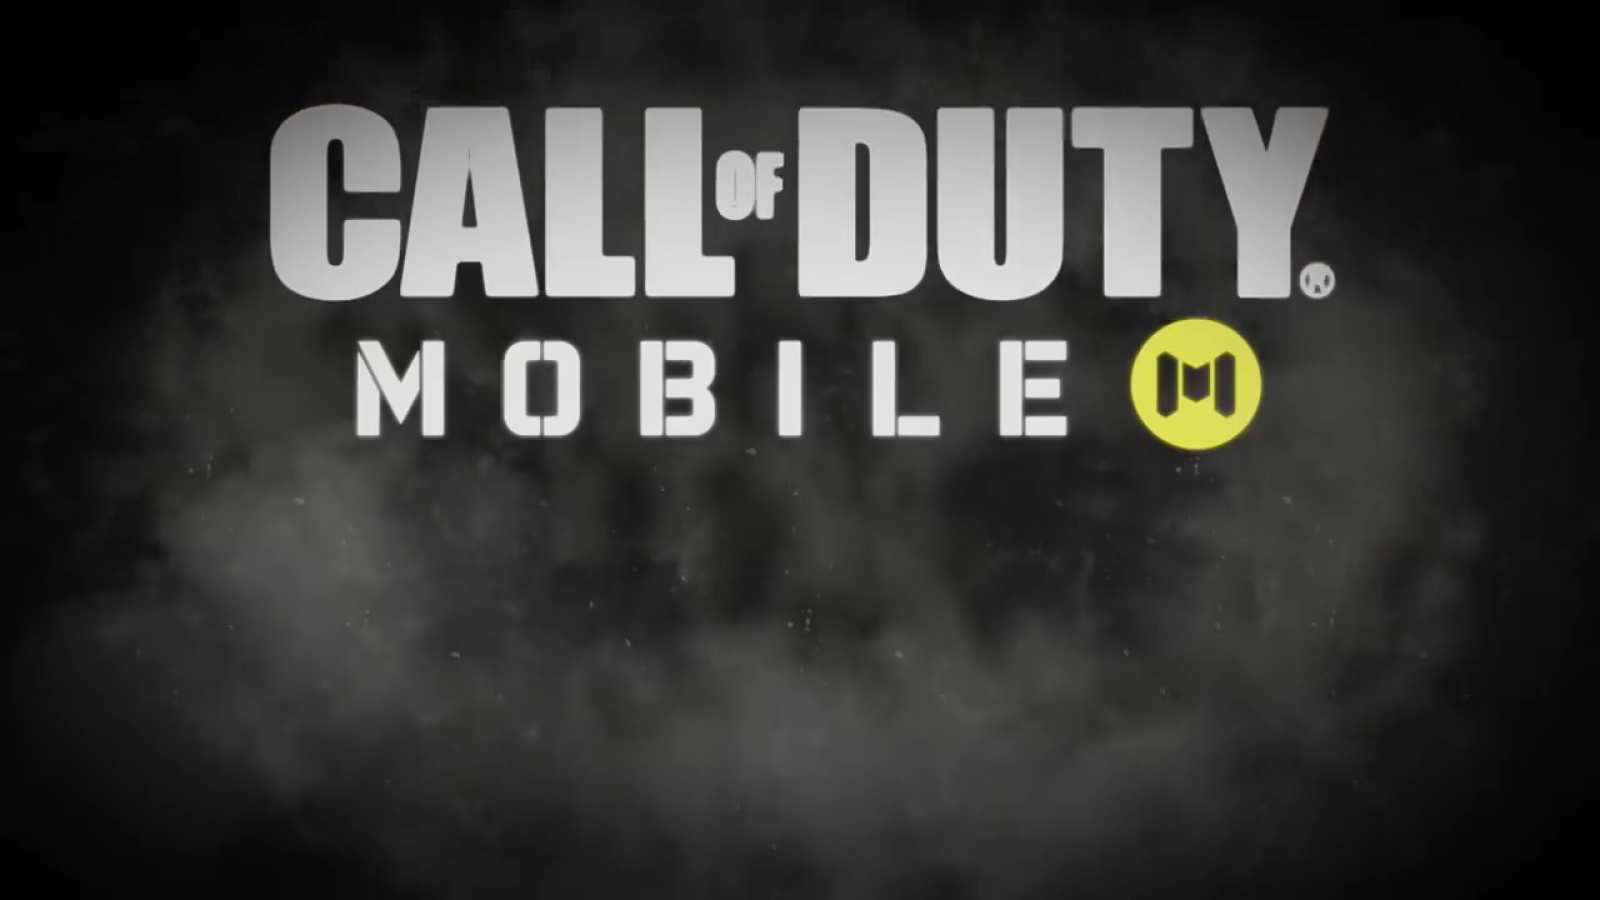 Call Of Duty Mobile Logo Png Hd - Game and Movie